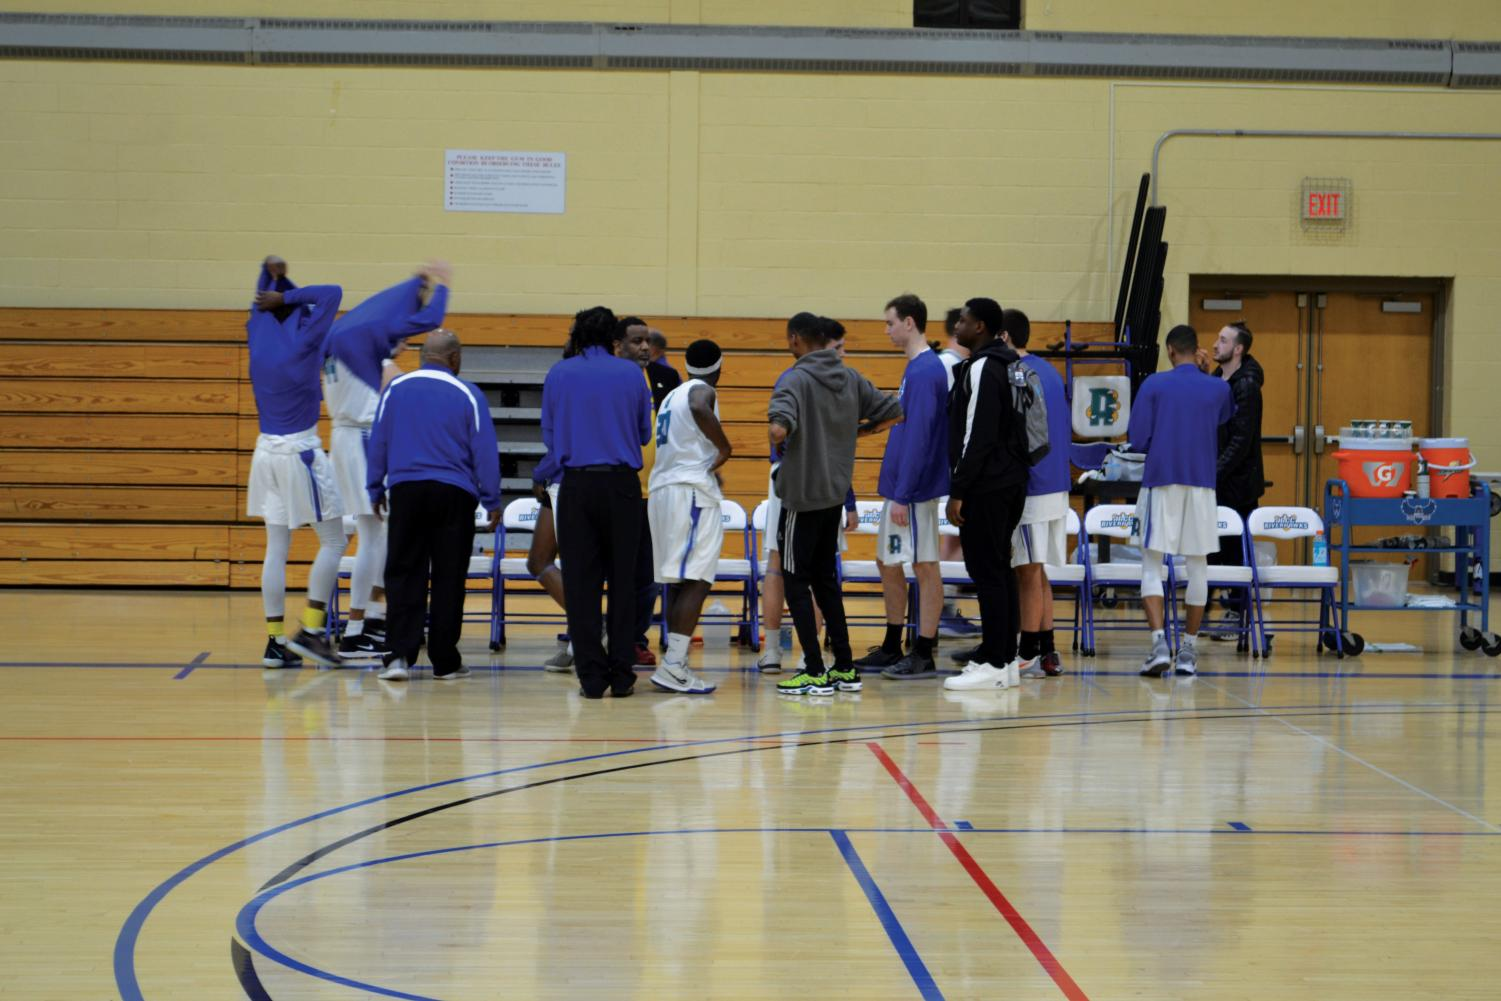 Riverhawks' Men's Basketball prepares to play Chesapeake Community College.